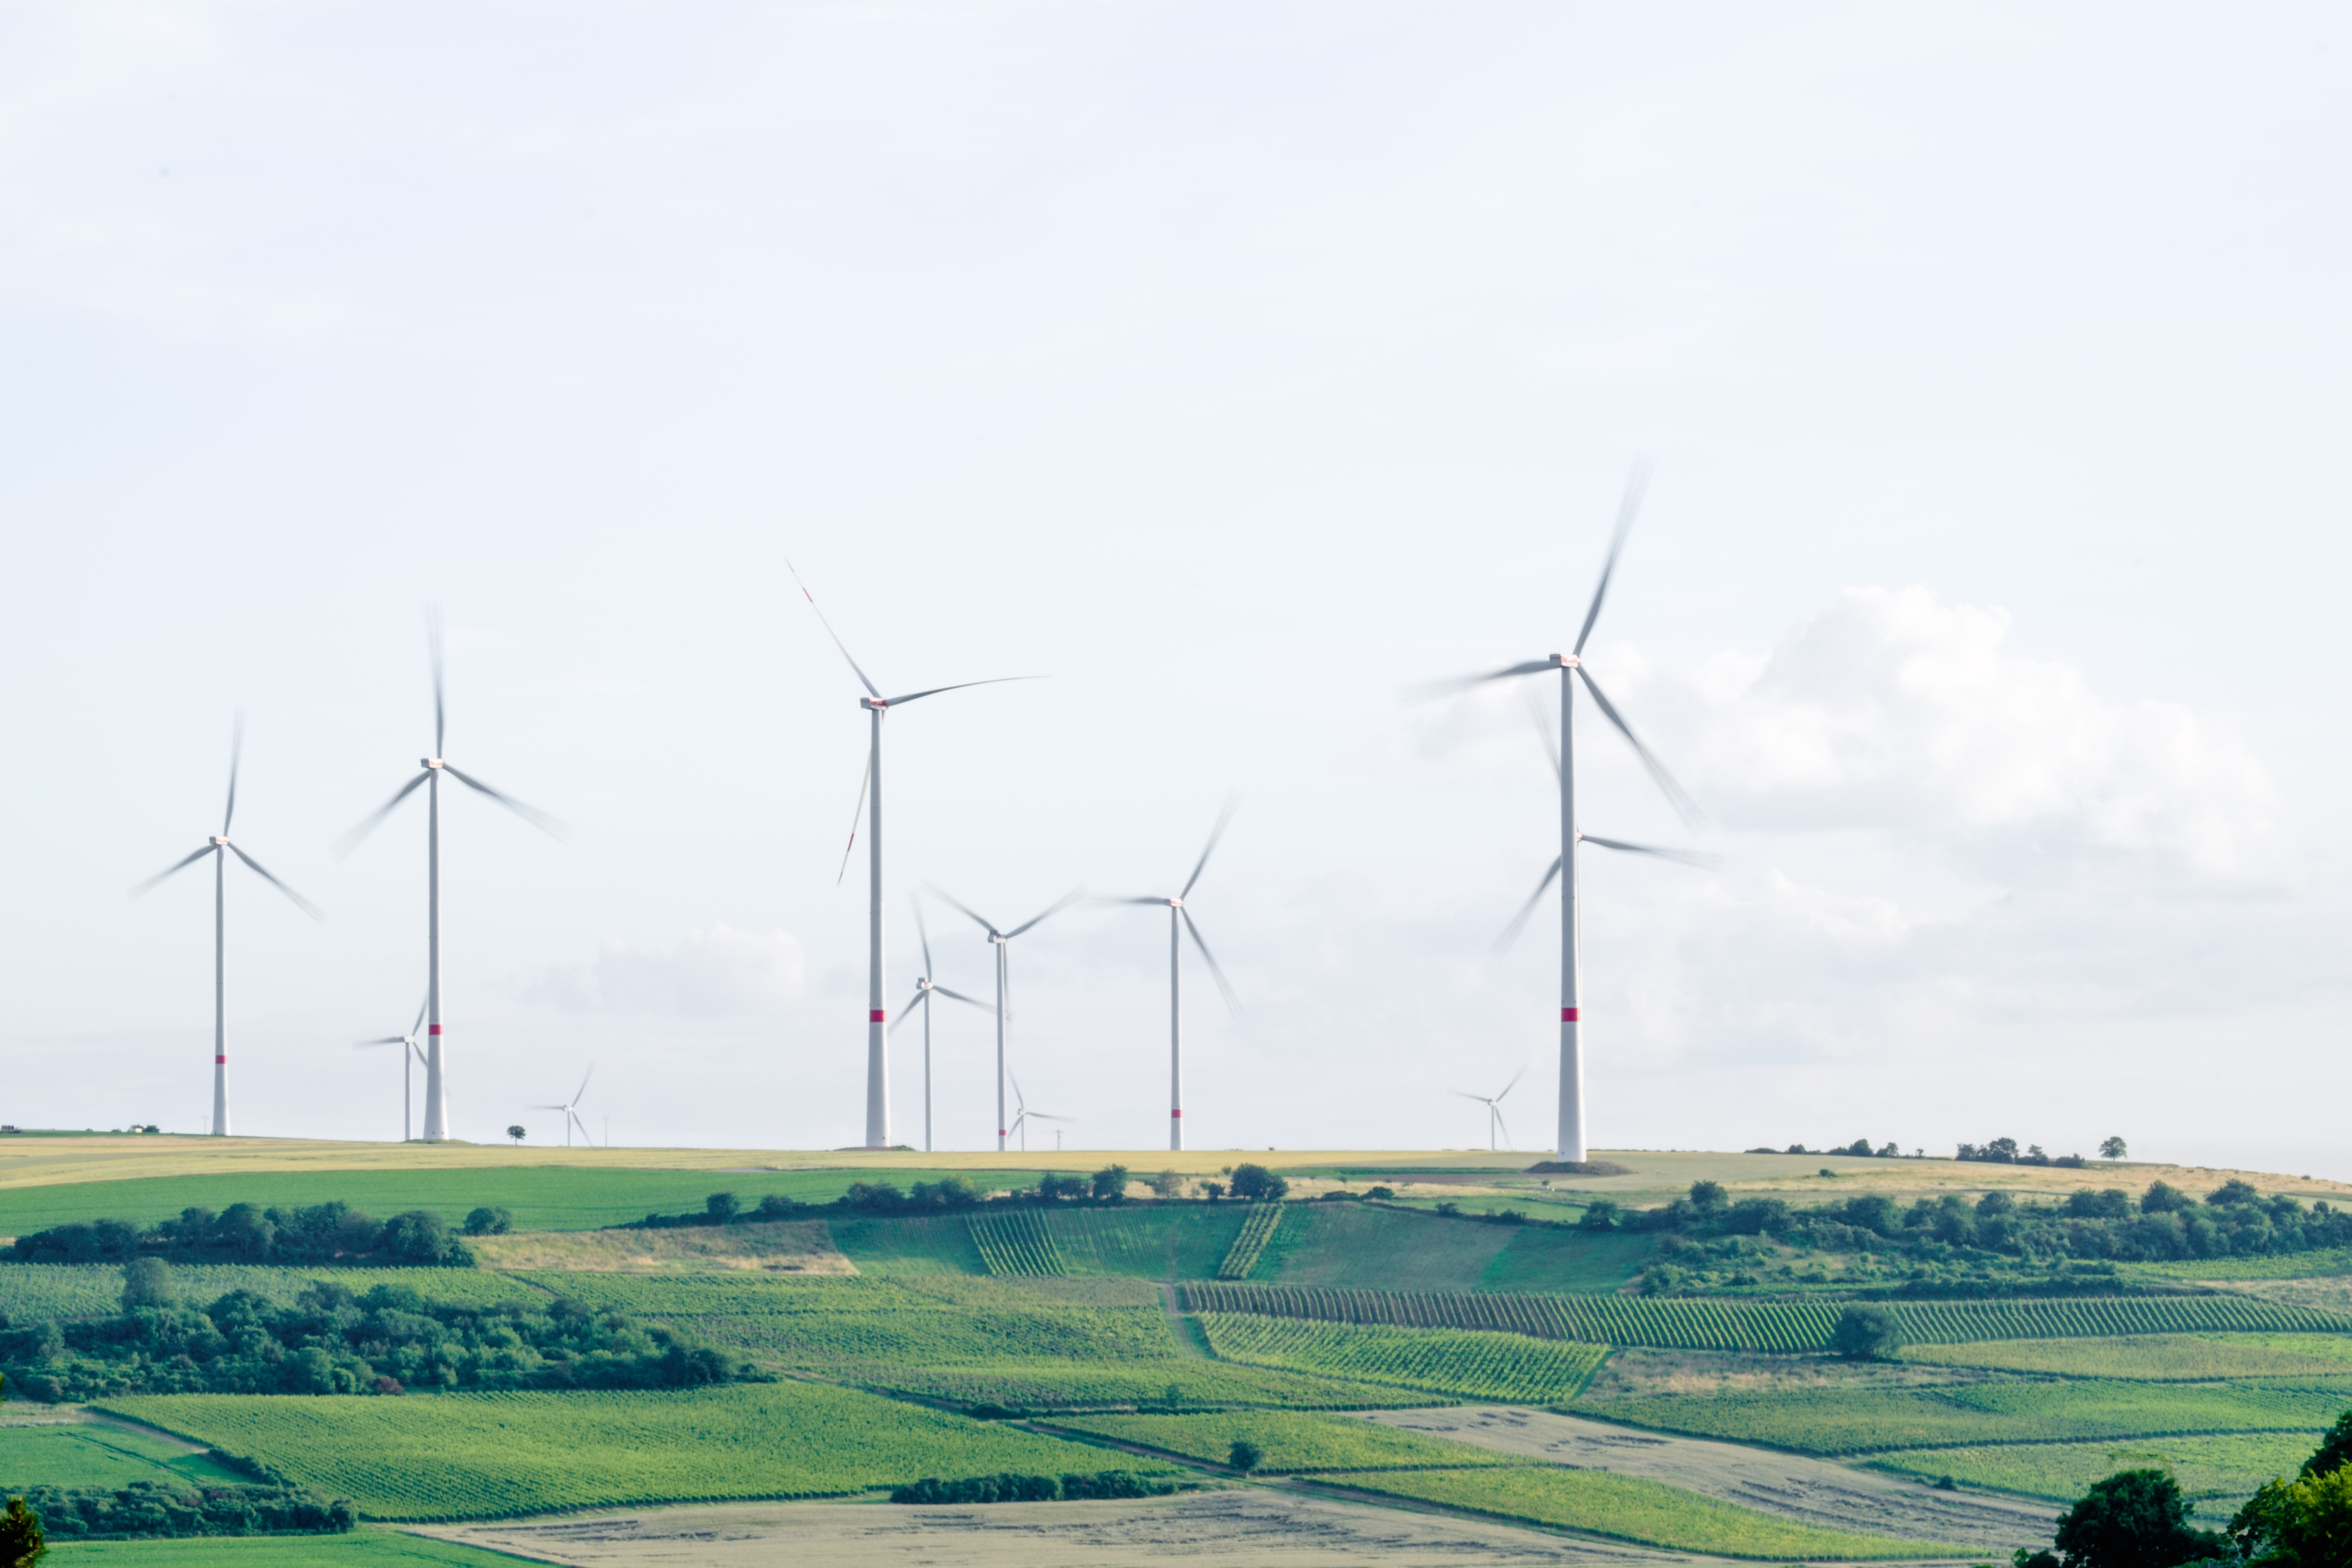 A group of wind turbines in a hilly landscape.